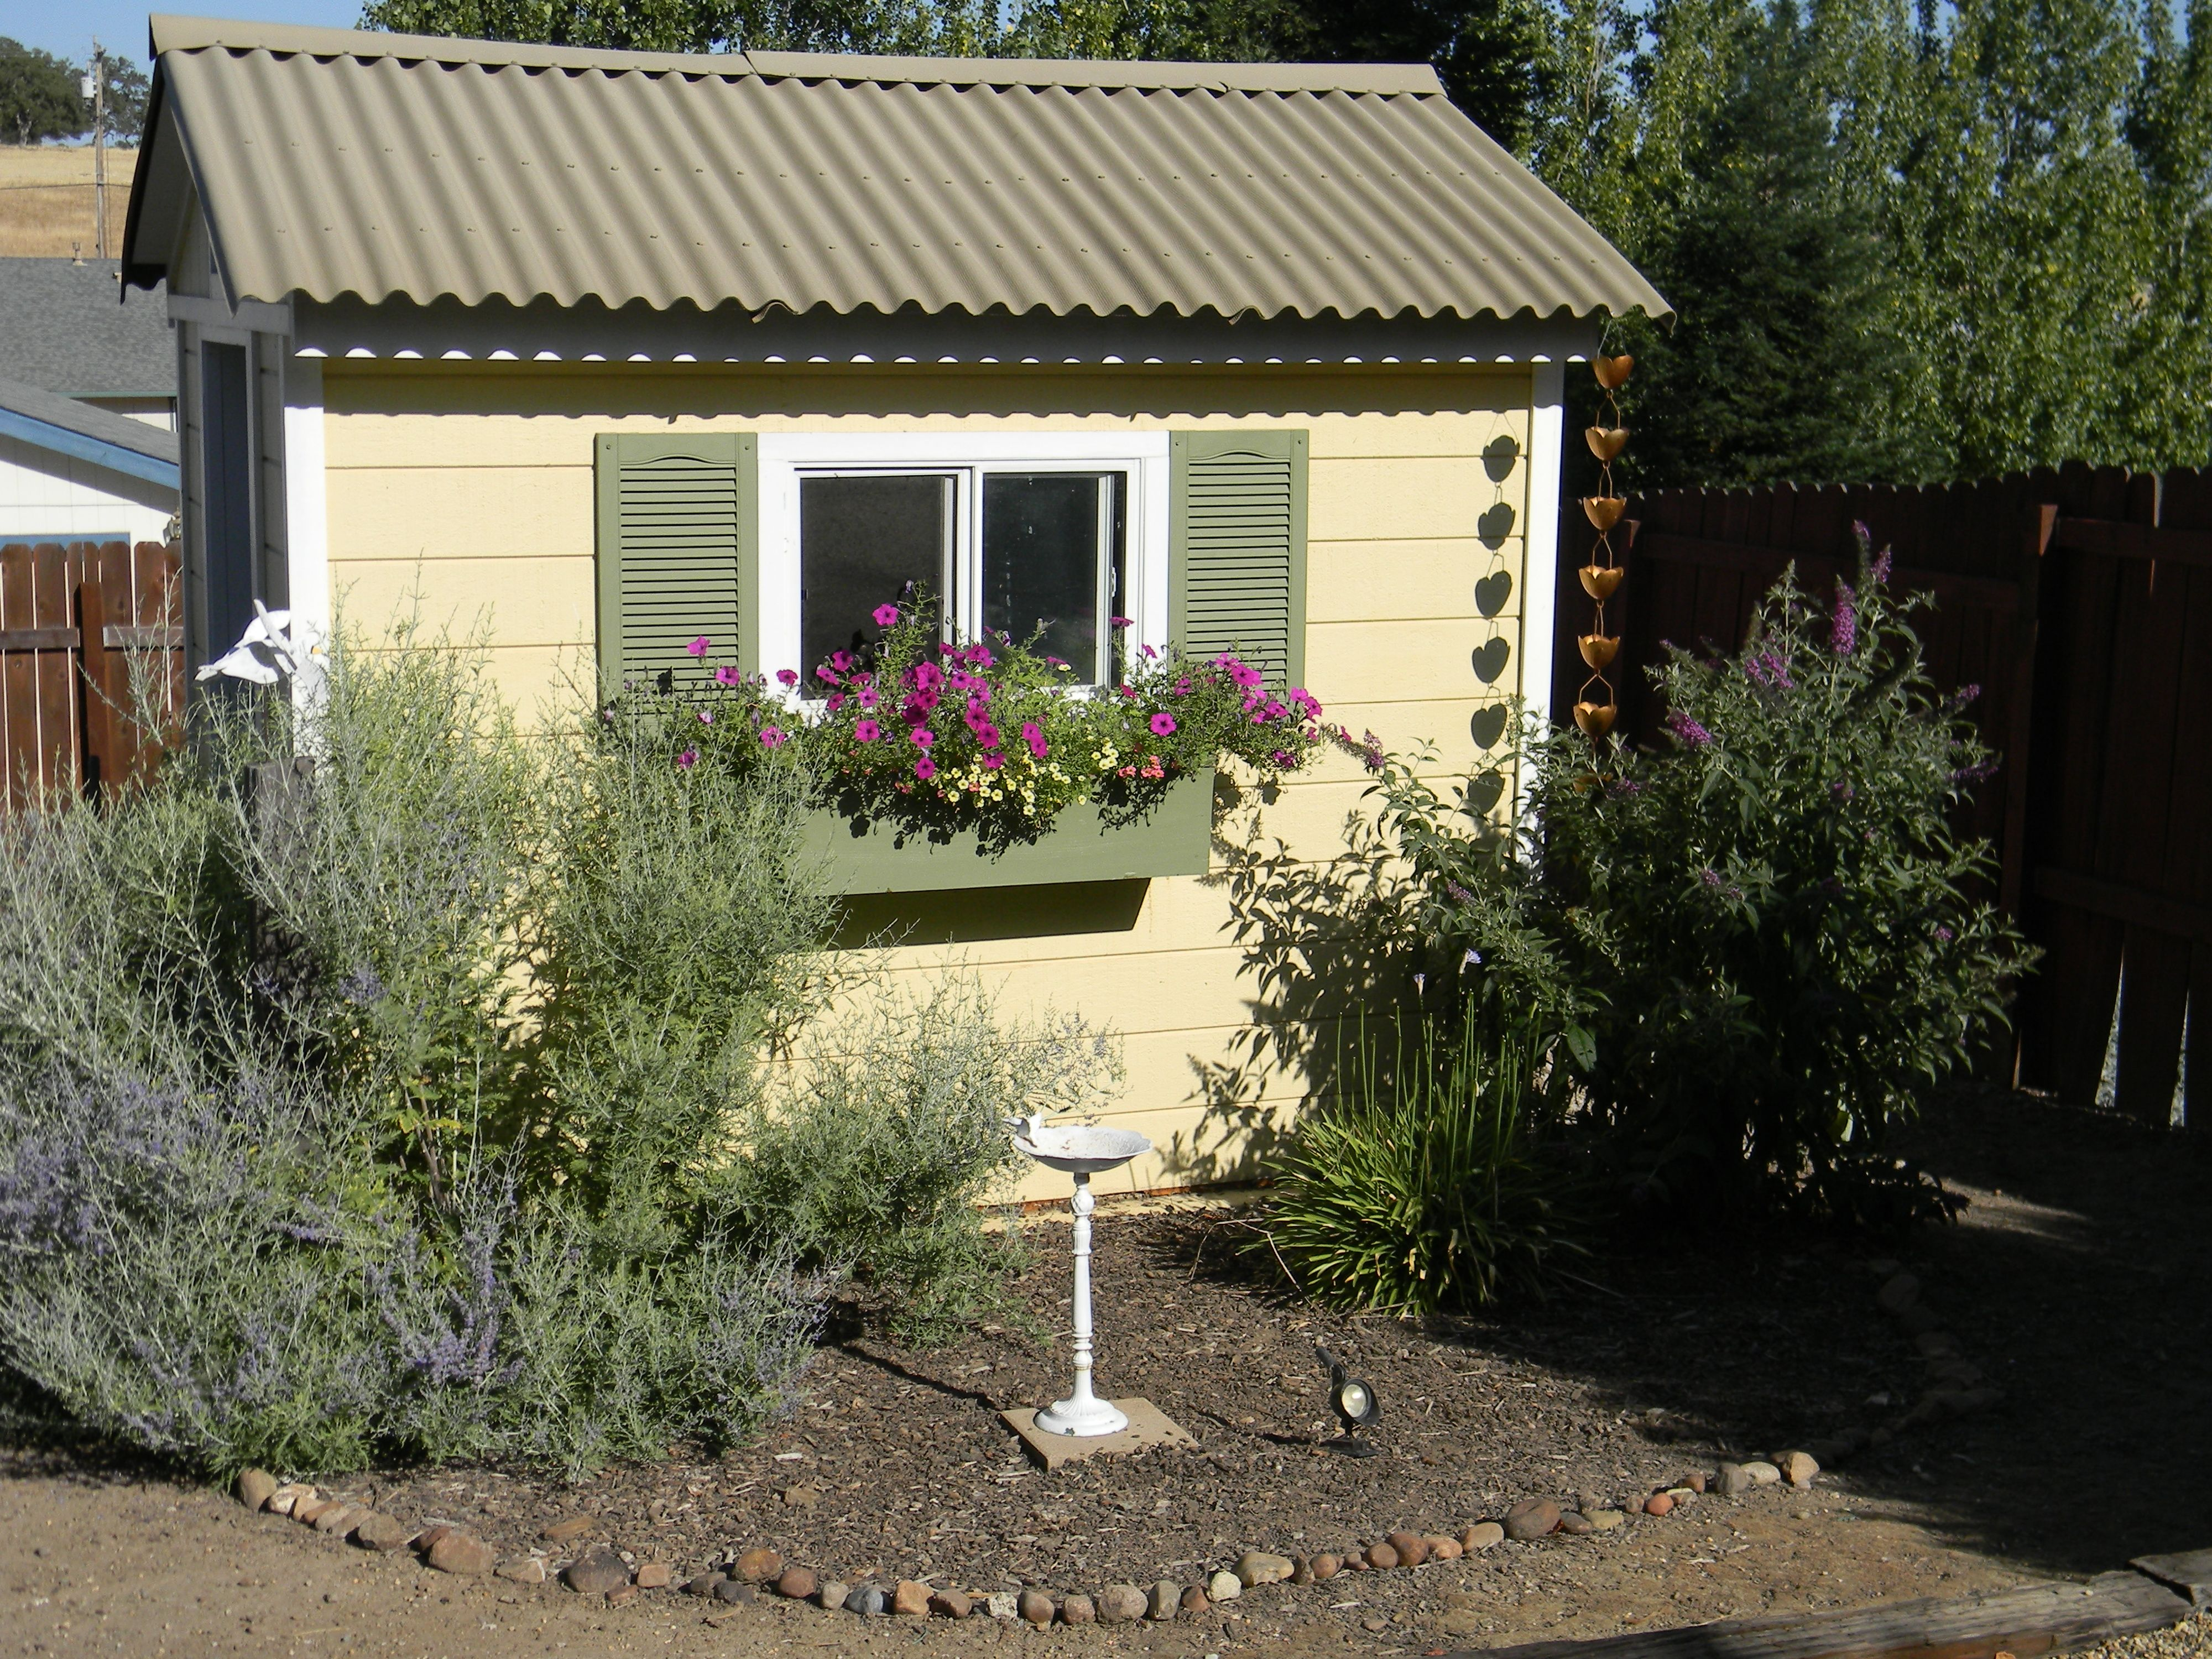 Shed garden cottage garden shed ideas pinterest - Cottage garden shed pictures ...